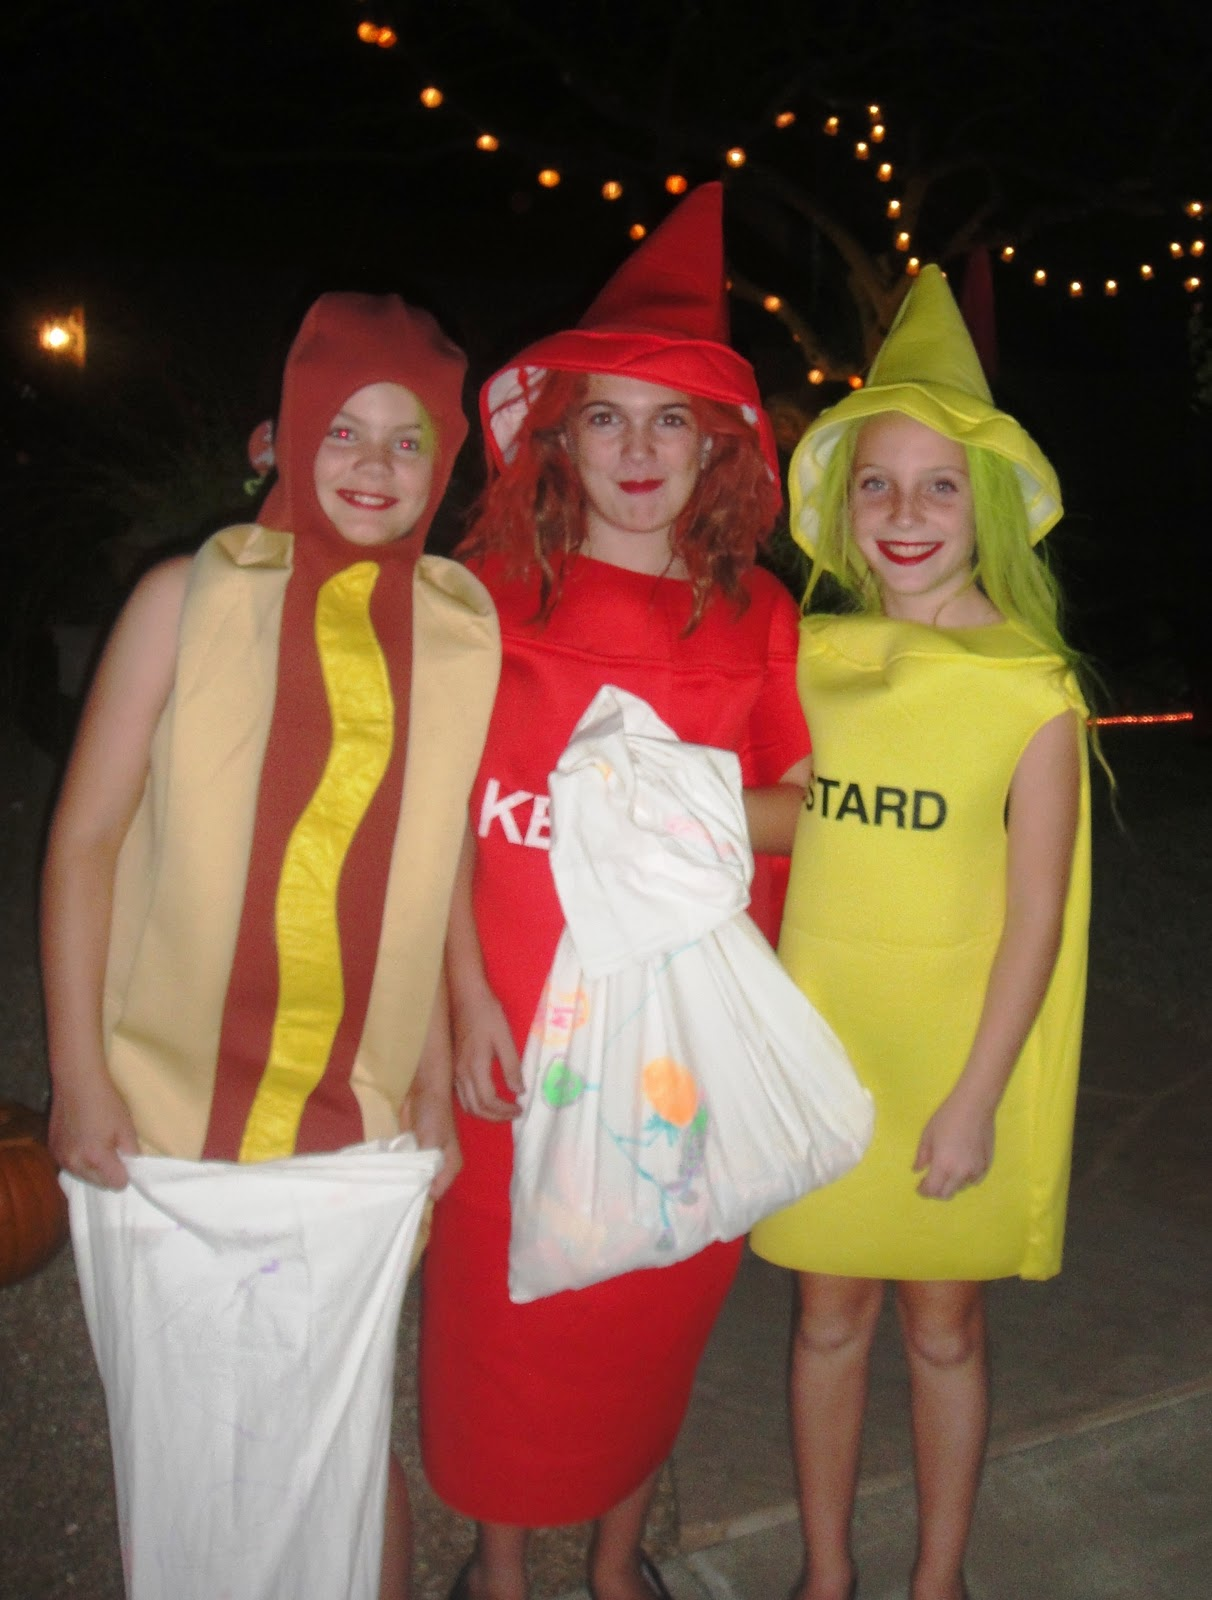 ... ketchup and mustard halloween costume the halloween ...  sc 1 st  The Halloween - aaasne & Ketchup And Mustard Halloween Costume - The Halloween